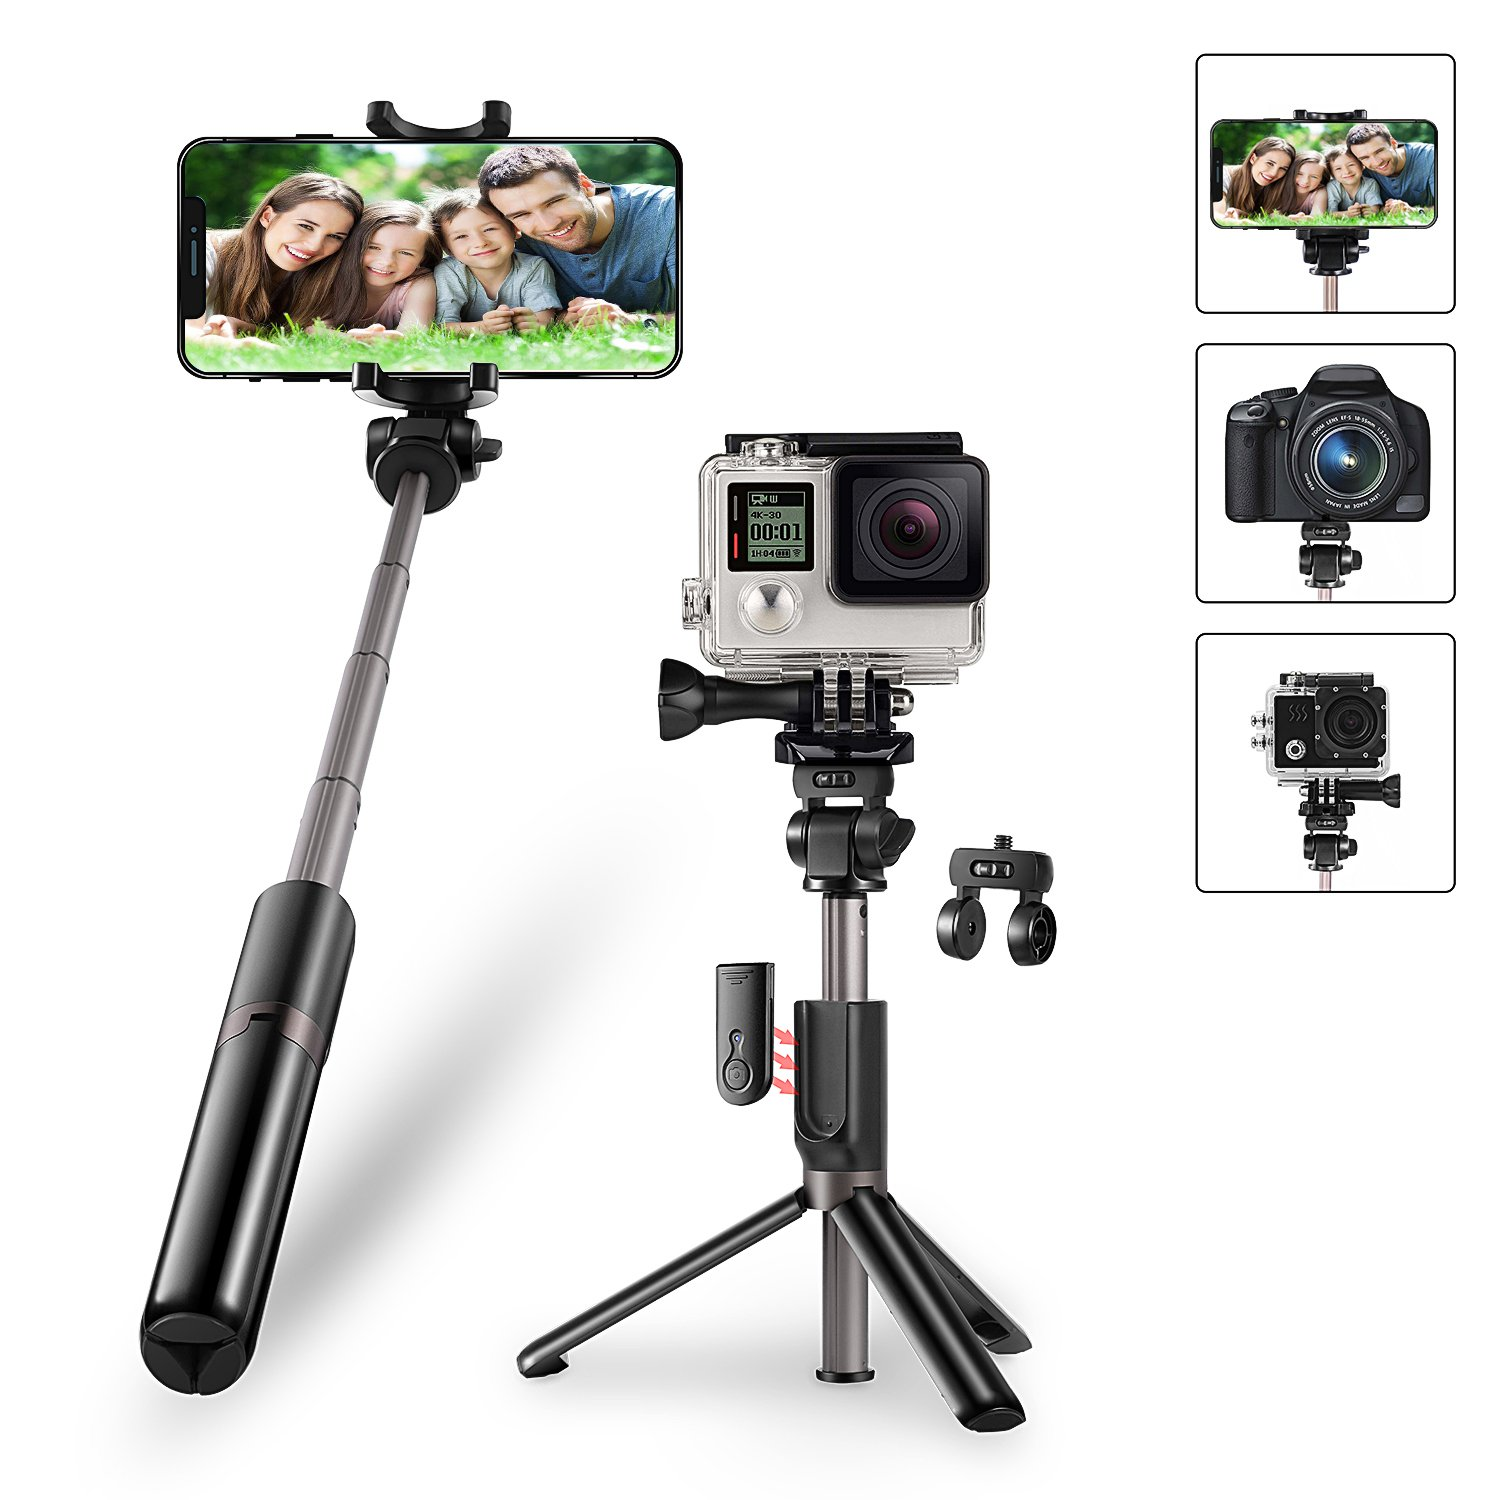 KocoDoll Bluetooth Selfie Stick, 4 in 1 Extendable Selfie Stick Tripod with Wireless Remote Shutter for GoPro, Action Cam, iPhone x 8 7 6 Plus, Galaxy S8/S7/S6/S5/Note 8, Huawei And More